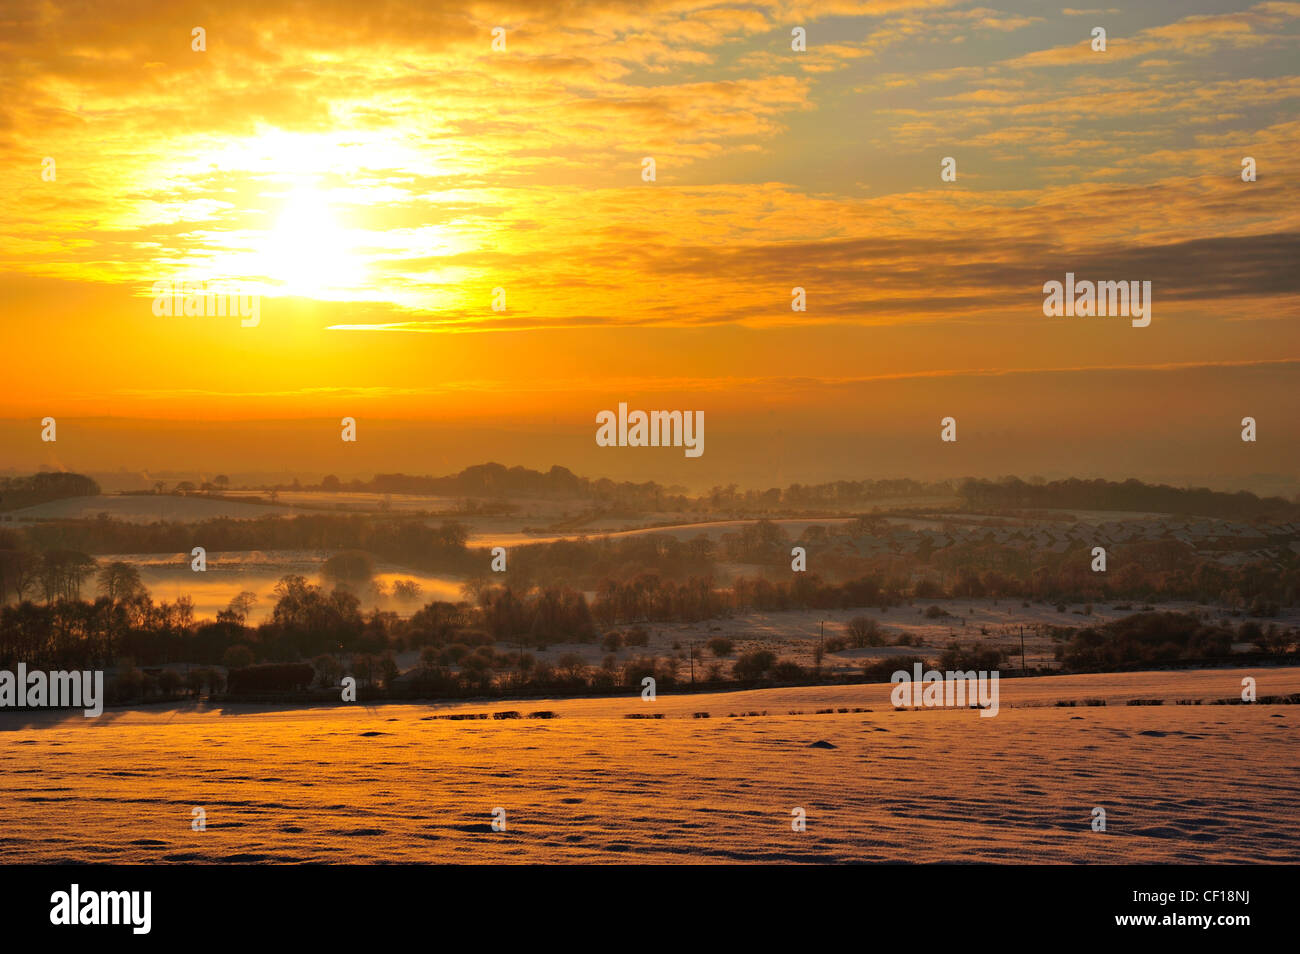 Sunset photograph of the Clyde Valley photographed from Airdrie looking towards Motherwell in the middle of a very Stock Photo